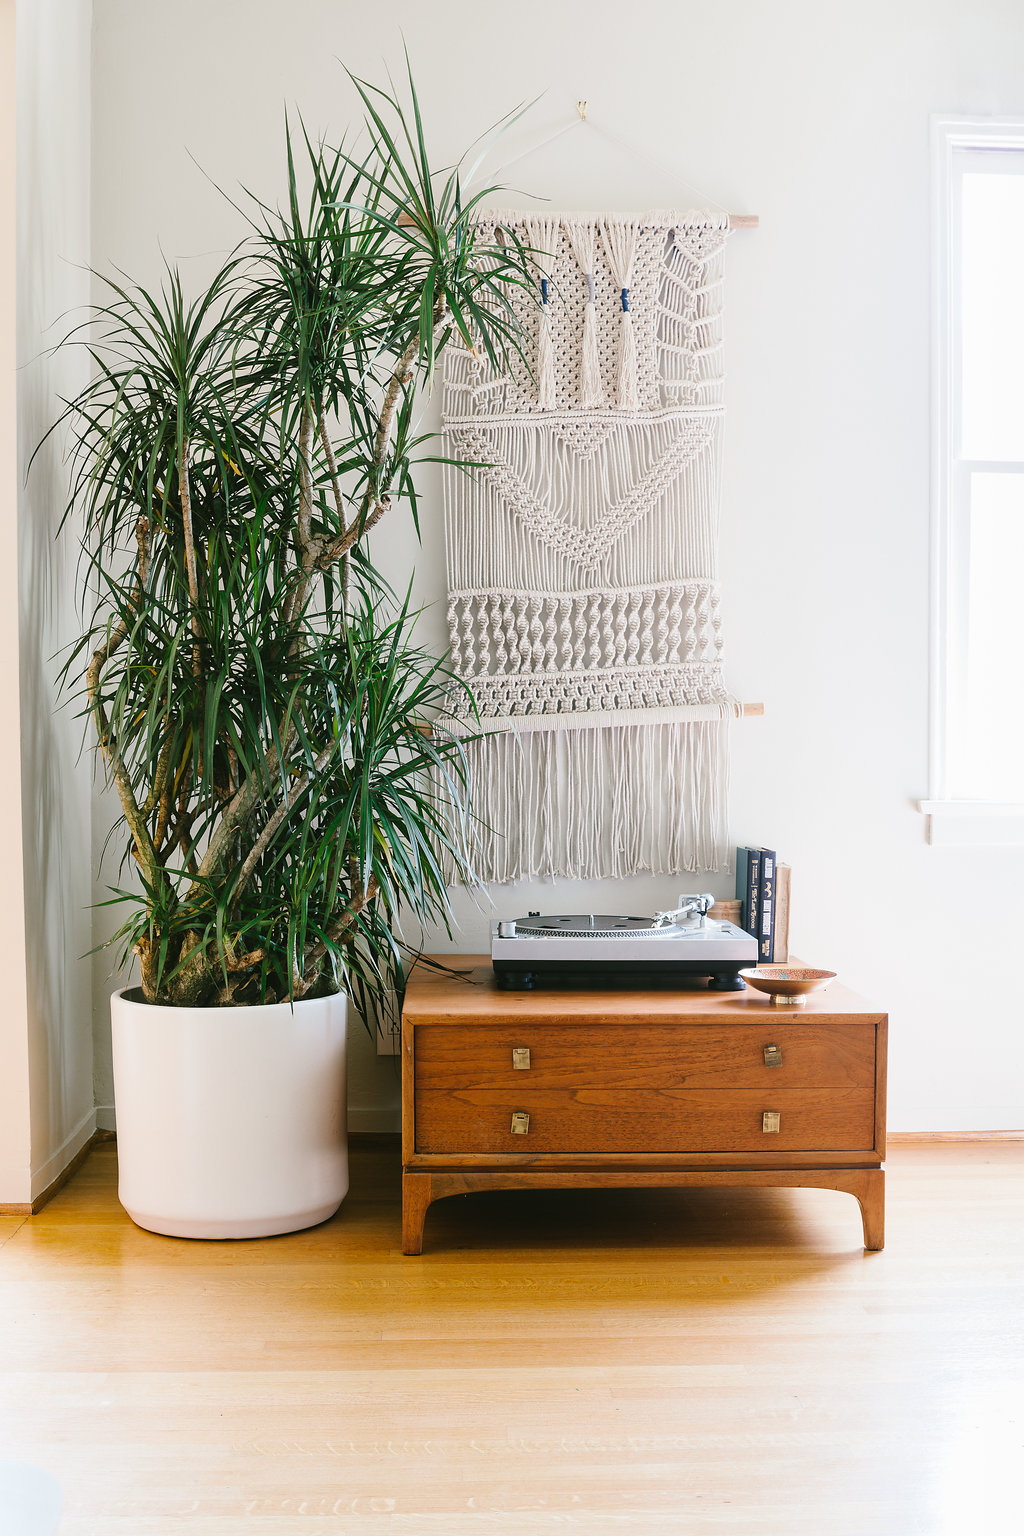 DRAGON TREE - A timeless indoor plant, recognizable for its long slender striped leaves that explode out of a strong trunk. Great for a modern or bohemian look, and one of the easiest plants to grow and care for.6ft tall plant with ceramic pot: $499Delivery included in SF & LA